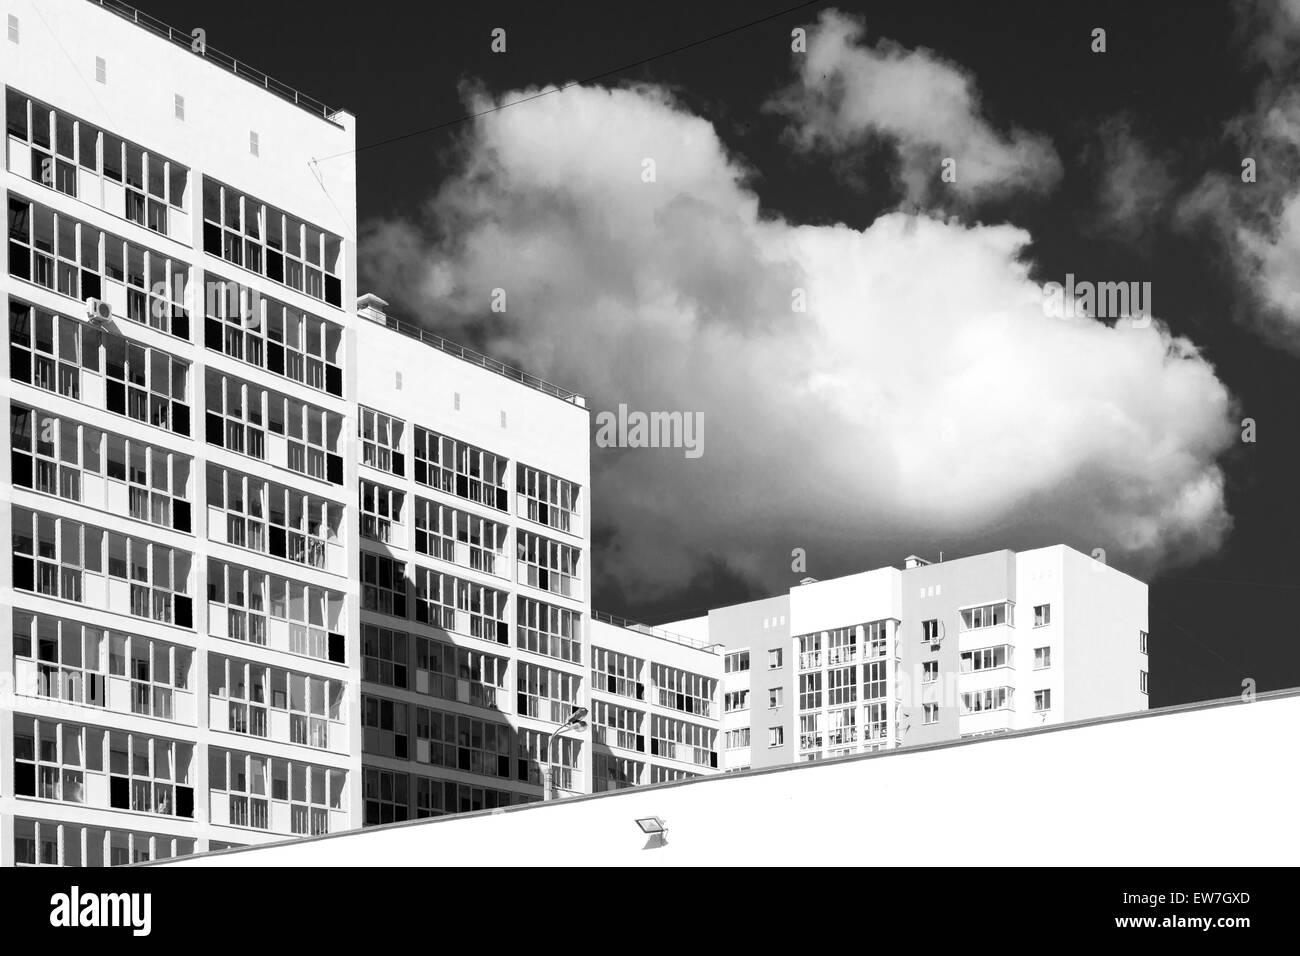 Newly designed and built modern housing blocks in unsaturated black and white - Stock Image